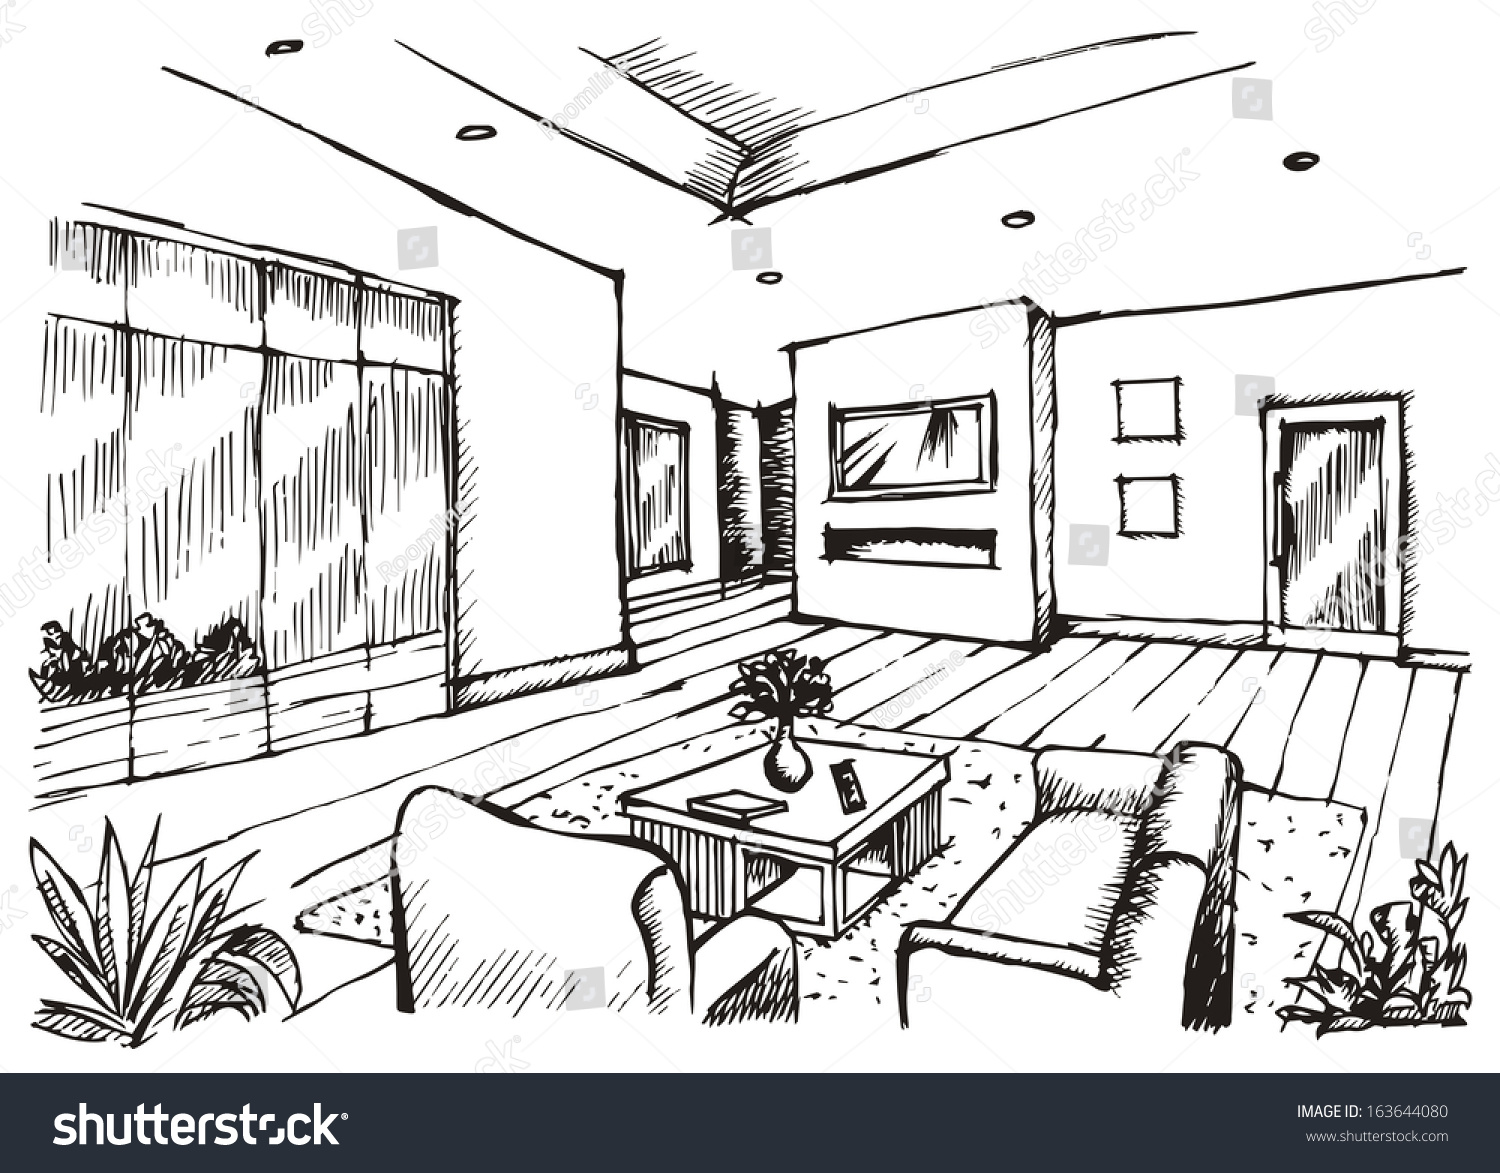 Living room drawing design - Hand Drawing Interior Design For Living Room Raster Image